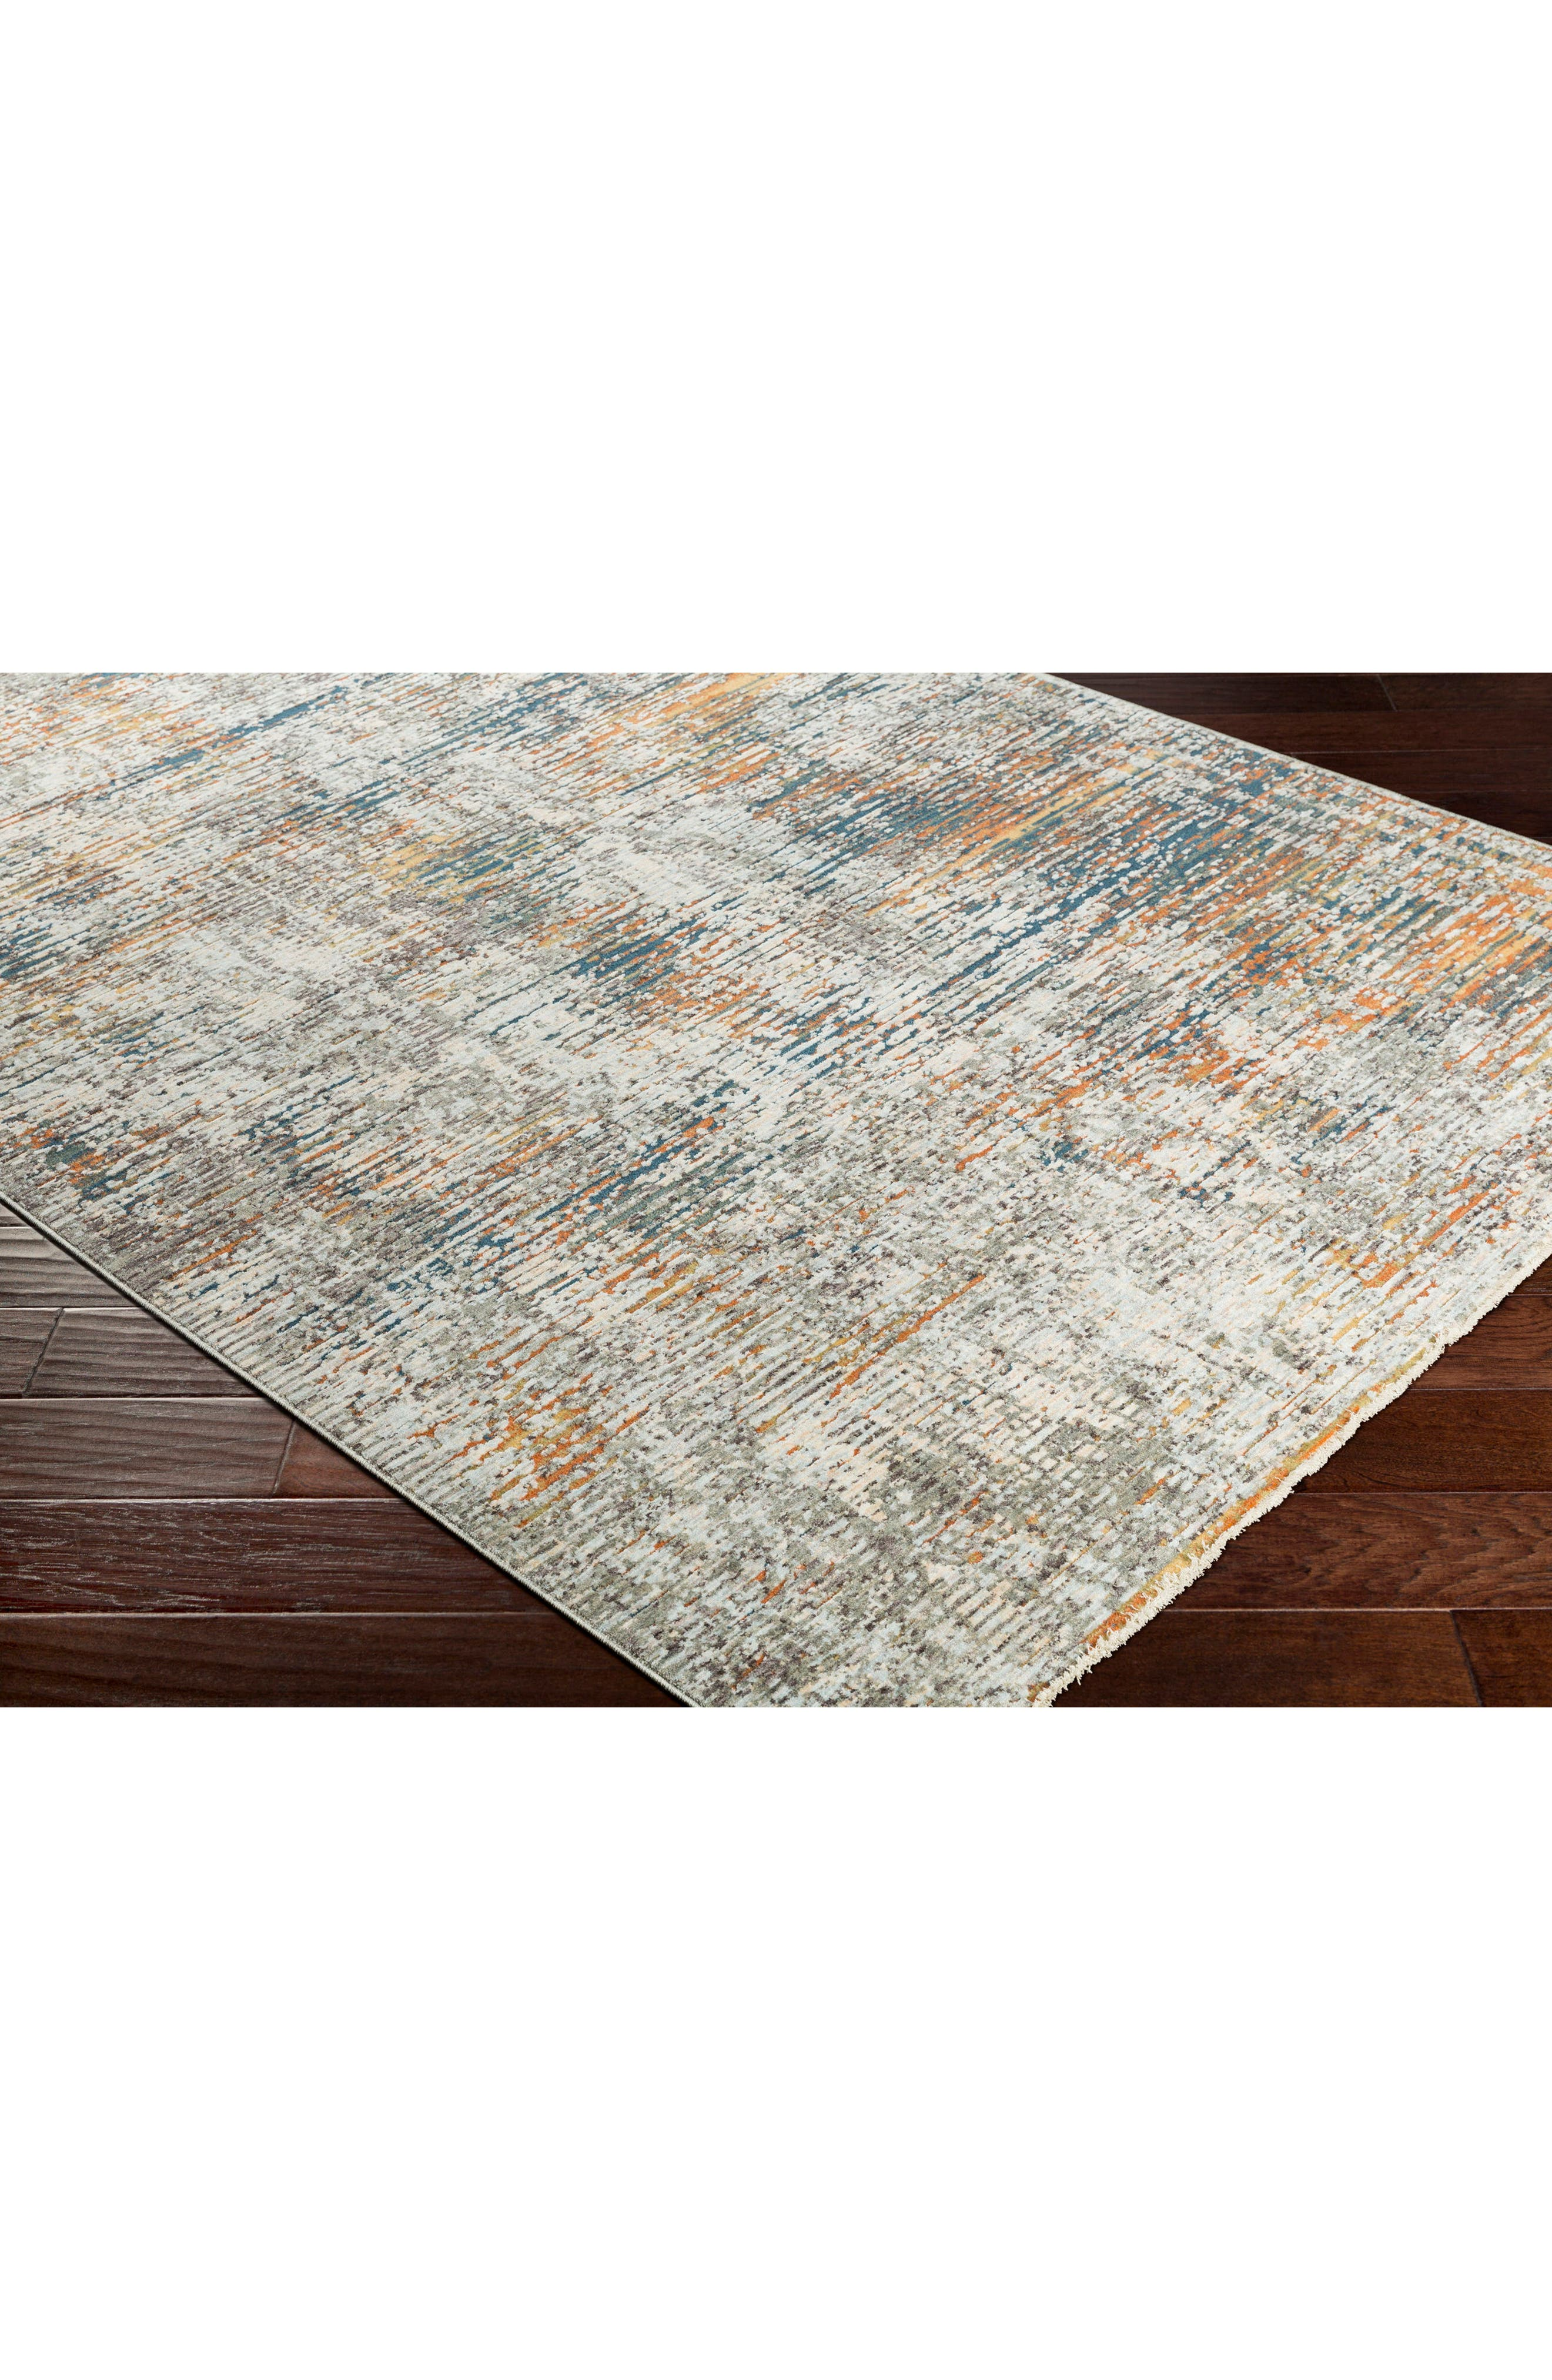 Presidential Lines Area Rug,                             Alternate thumbnail 5, color,                             BRIGHT BLUE